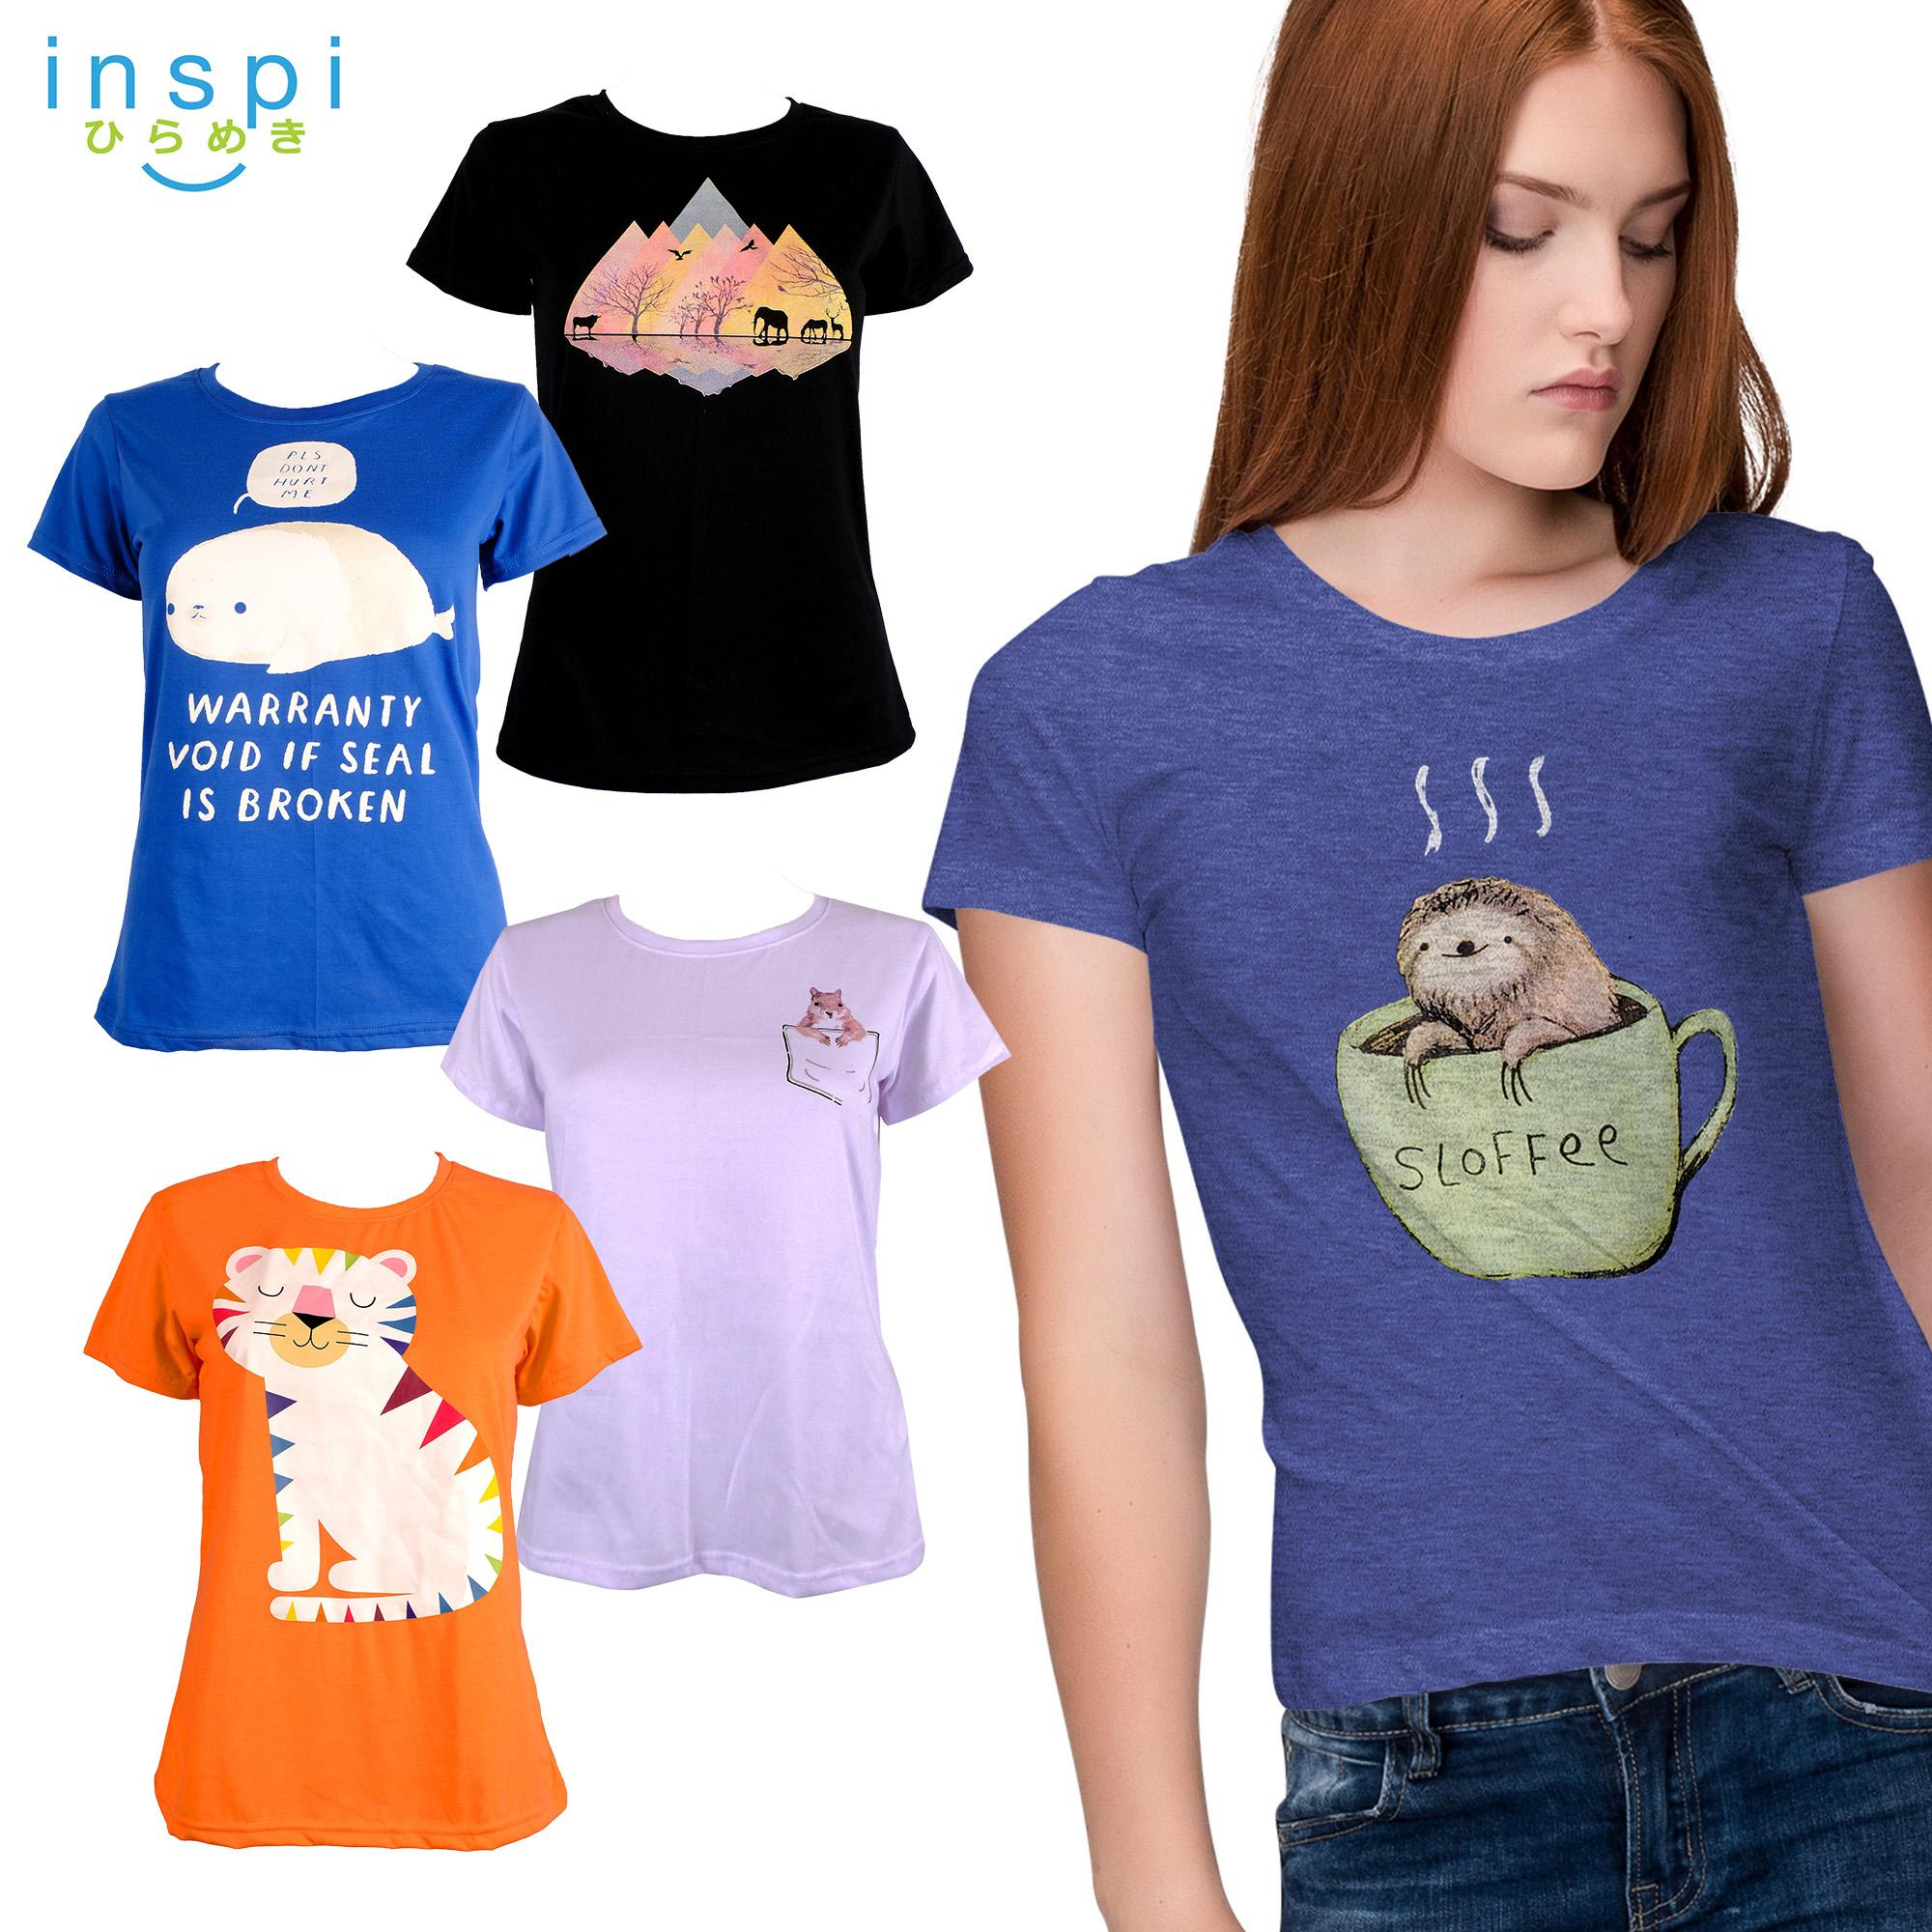 07b18d4b873 833985 items found in Tops. INSPI Tees Ladies Pet Collection tshirt printed graphic  tee Ladies t shirt shirts women tshirts for